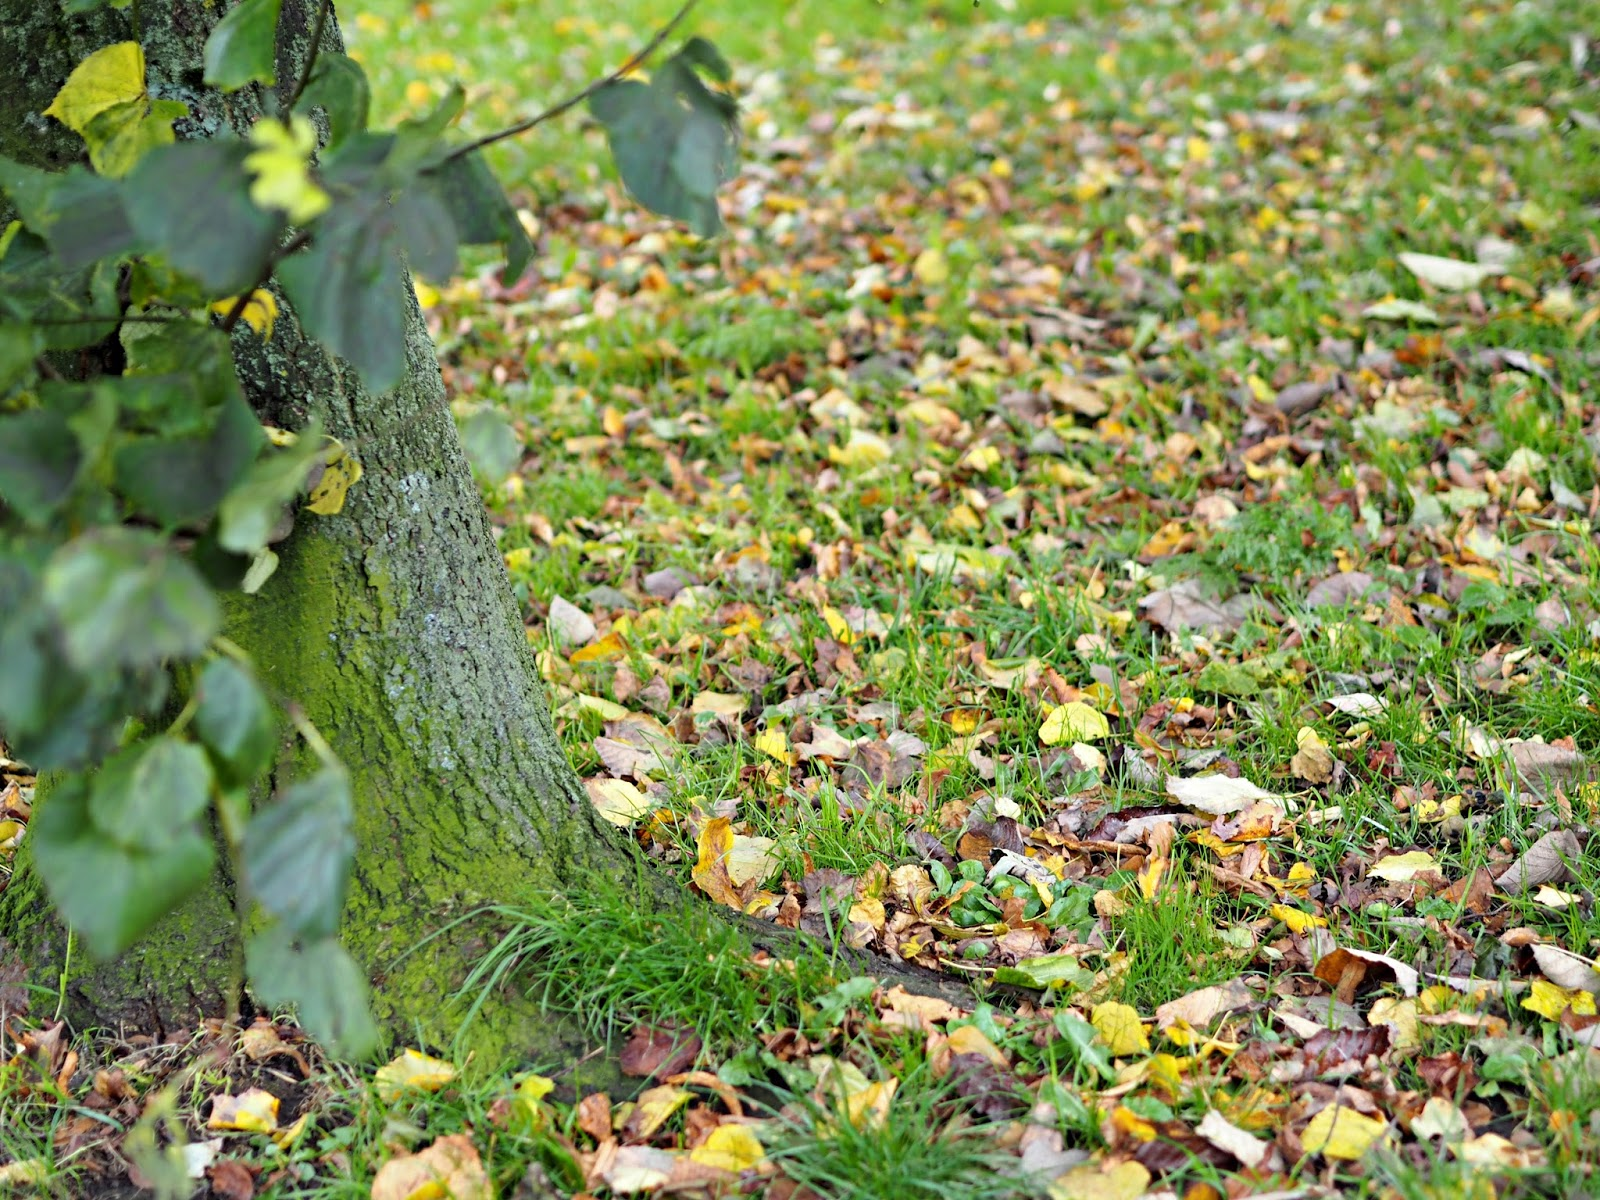 tree trunk and leaves